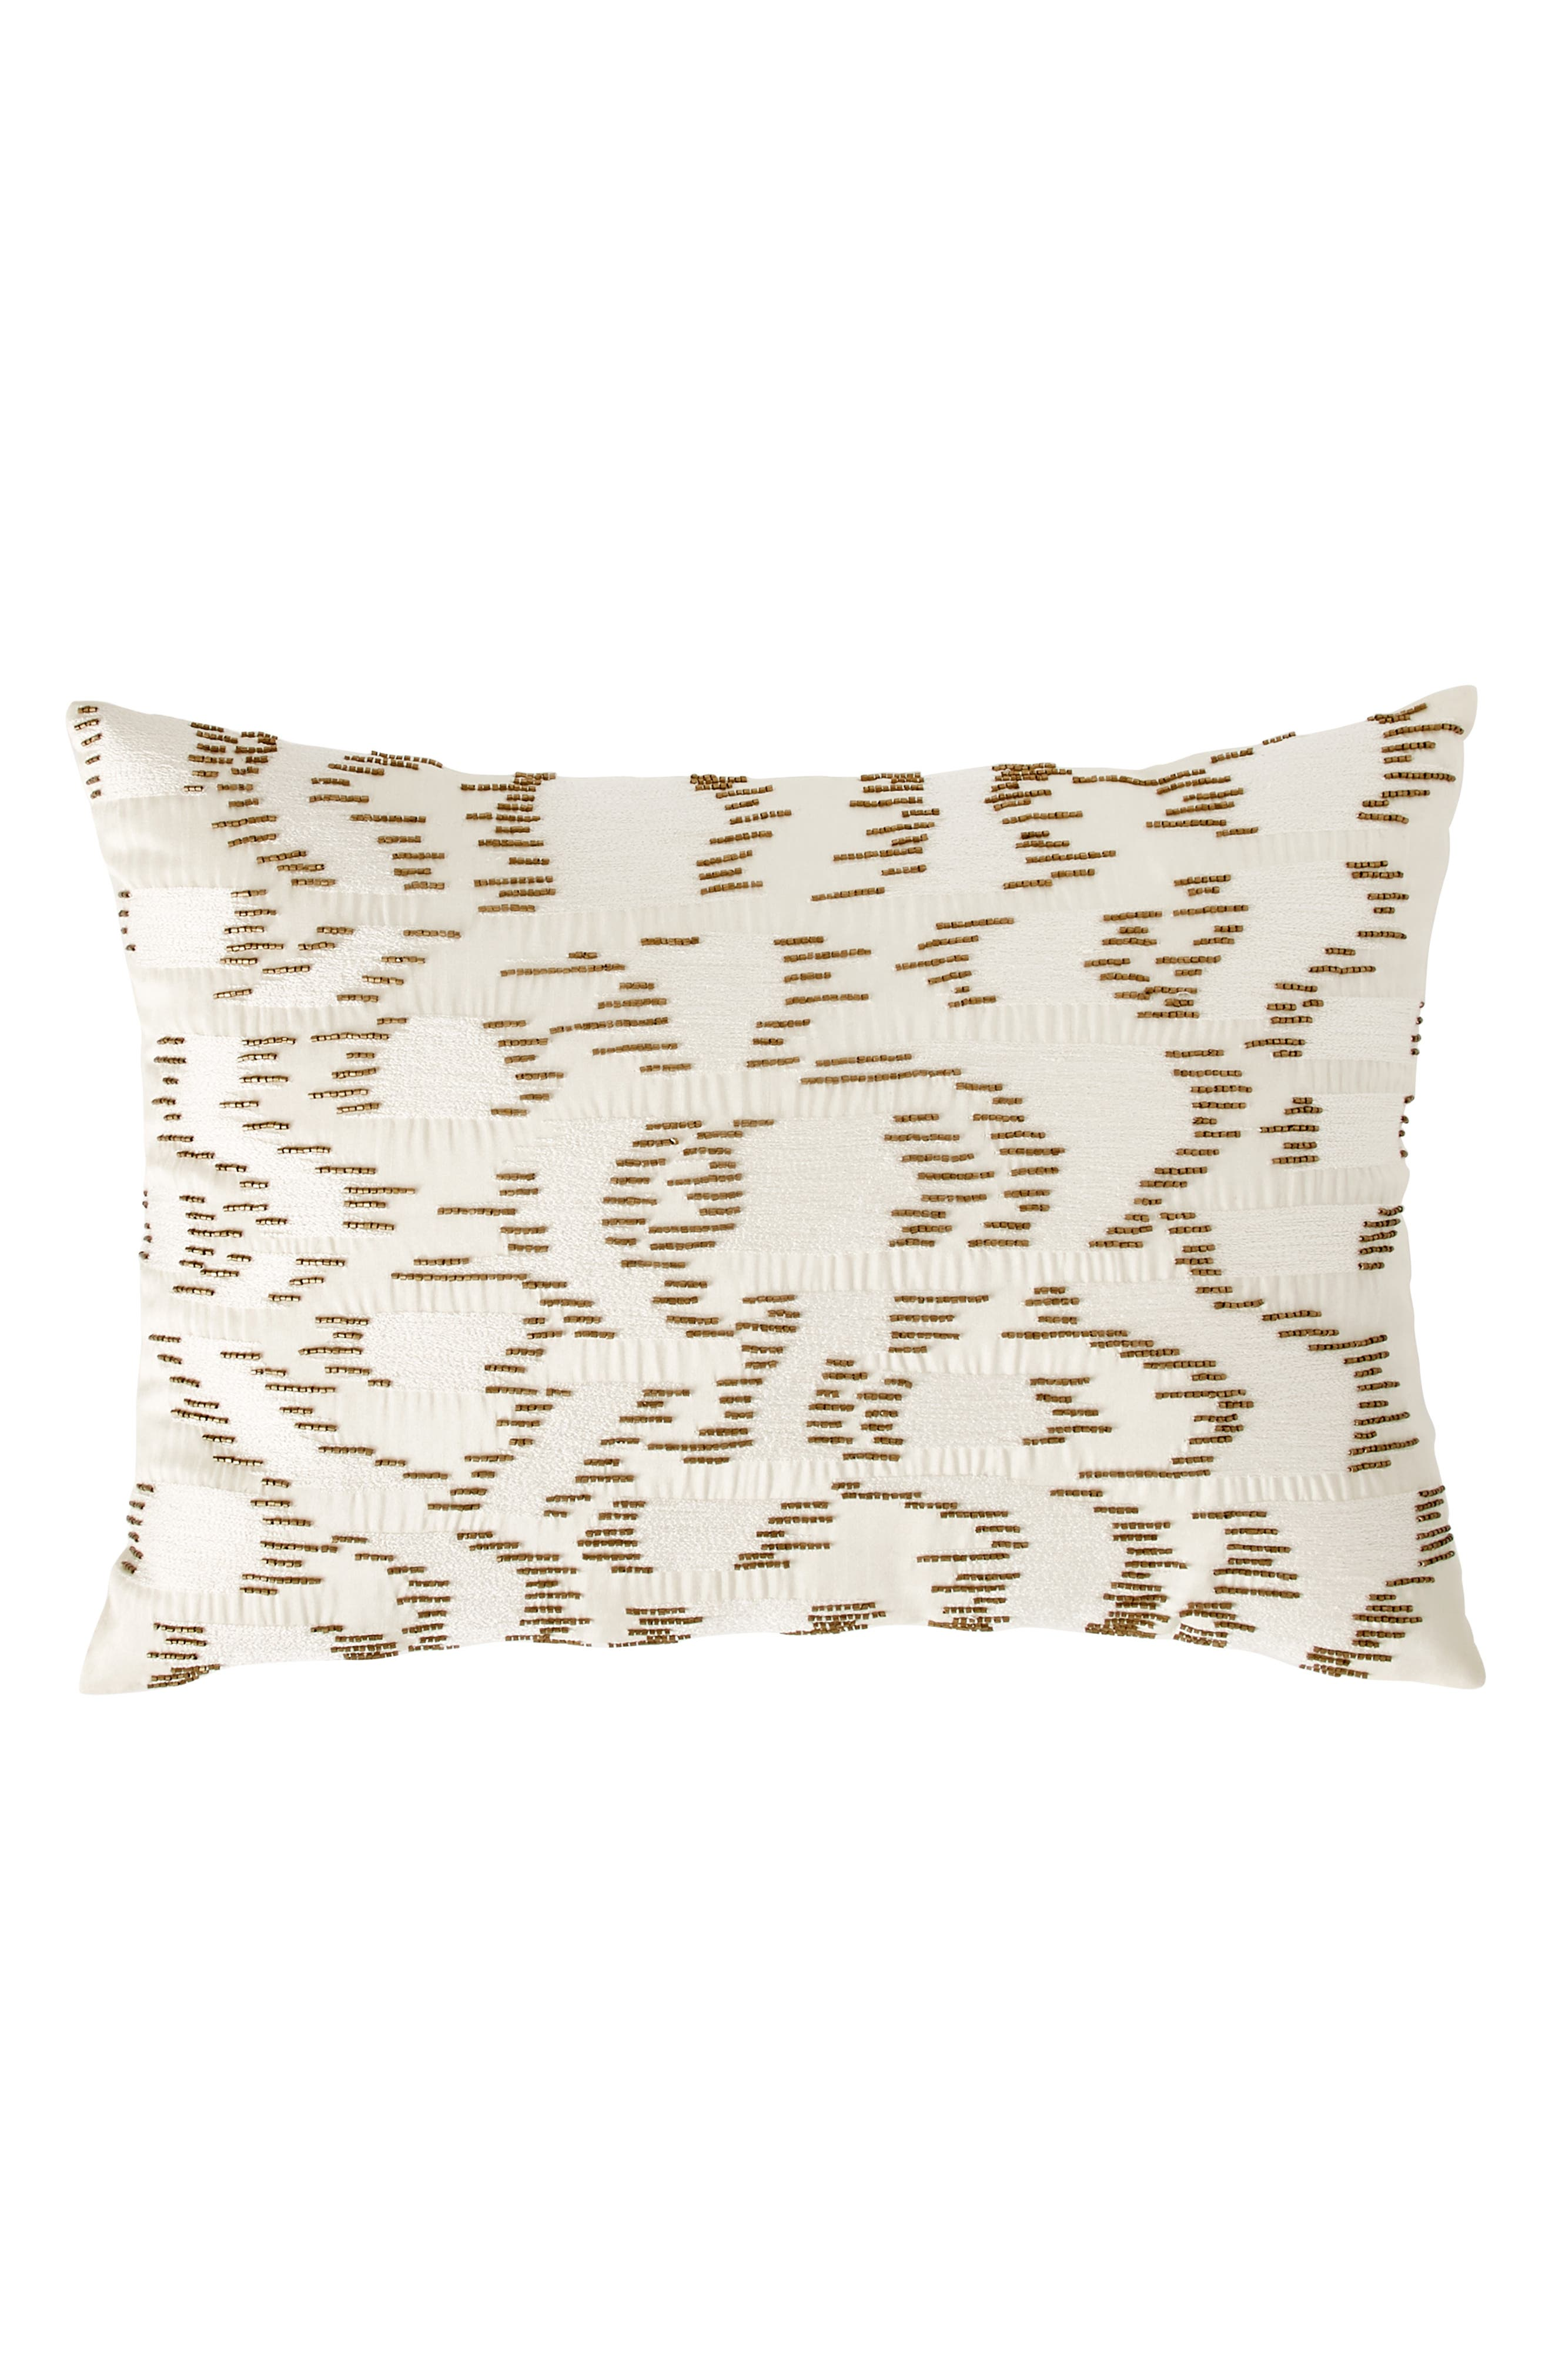 MICHAEL ARAM Beaded & Embroidered Accent Pillow, Main, color, 900